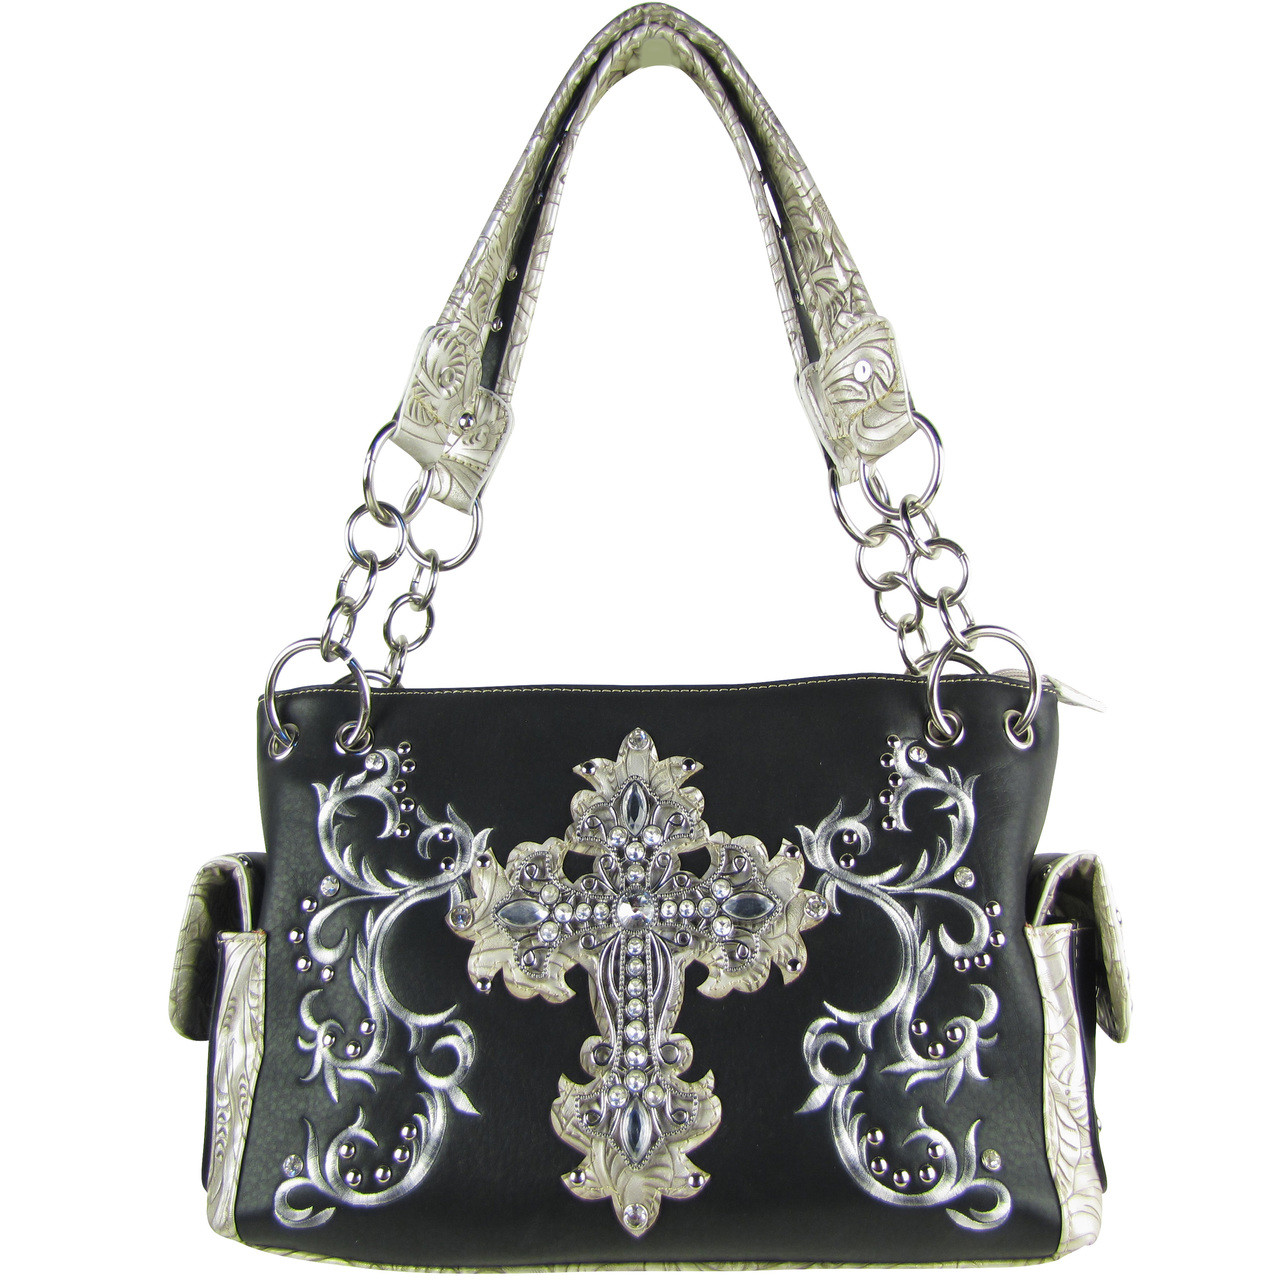 BLACK RHINESTONE CROSS LOOK SHOULDER HANDBAG HB1-64LCRBLK